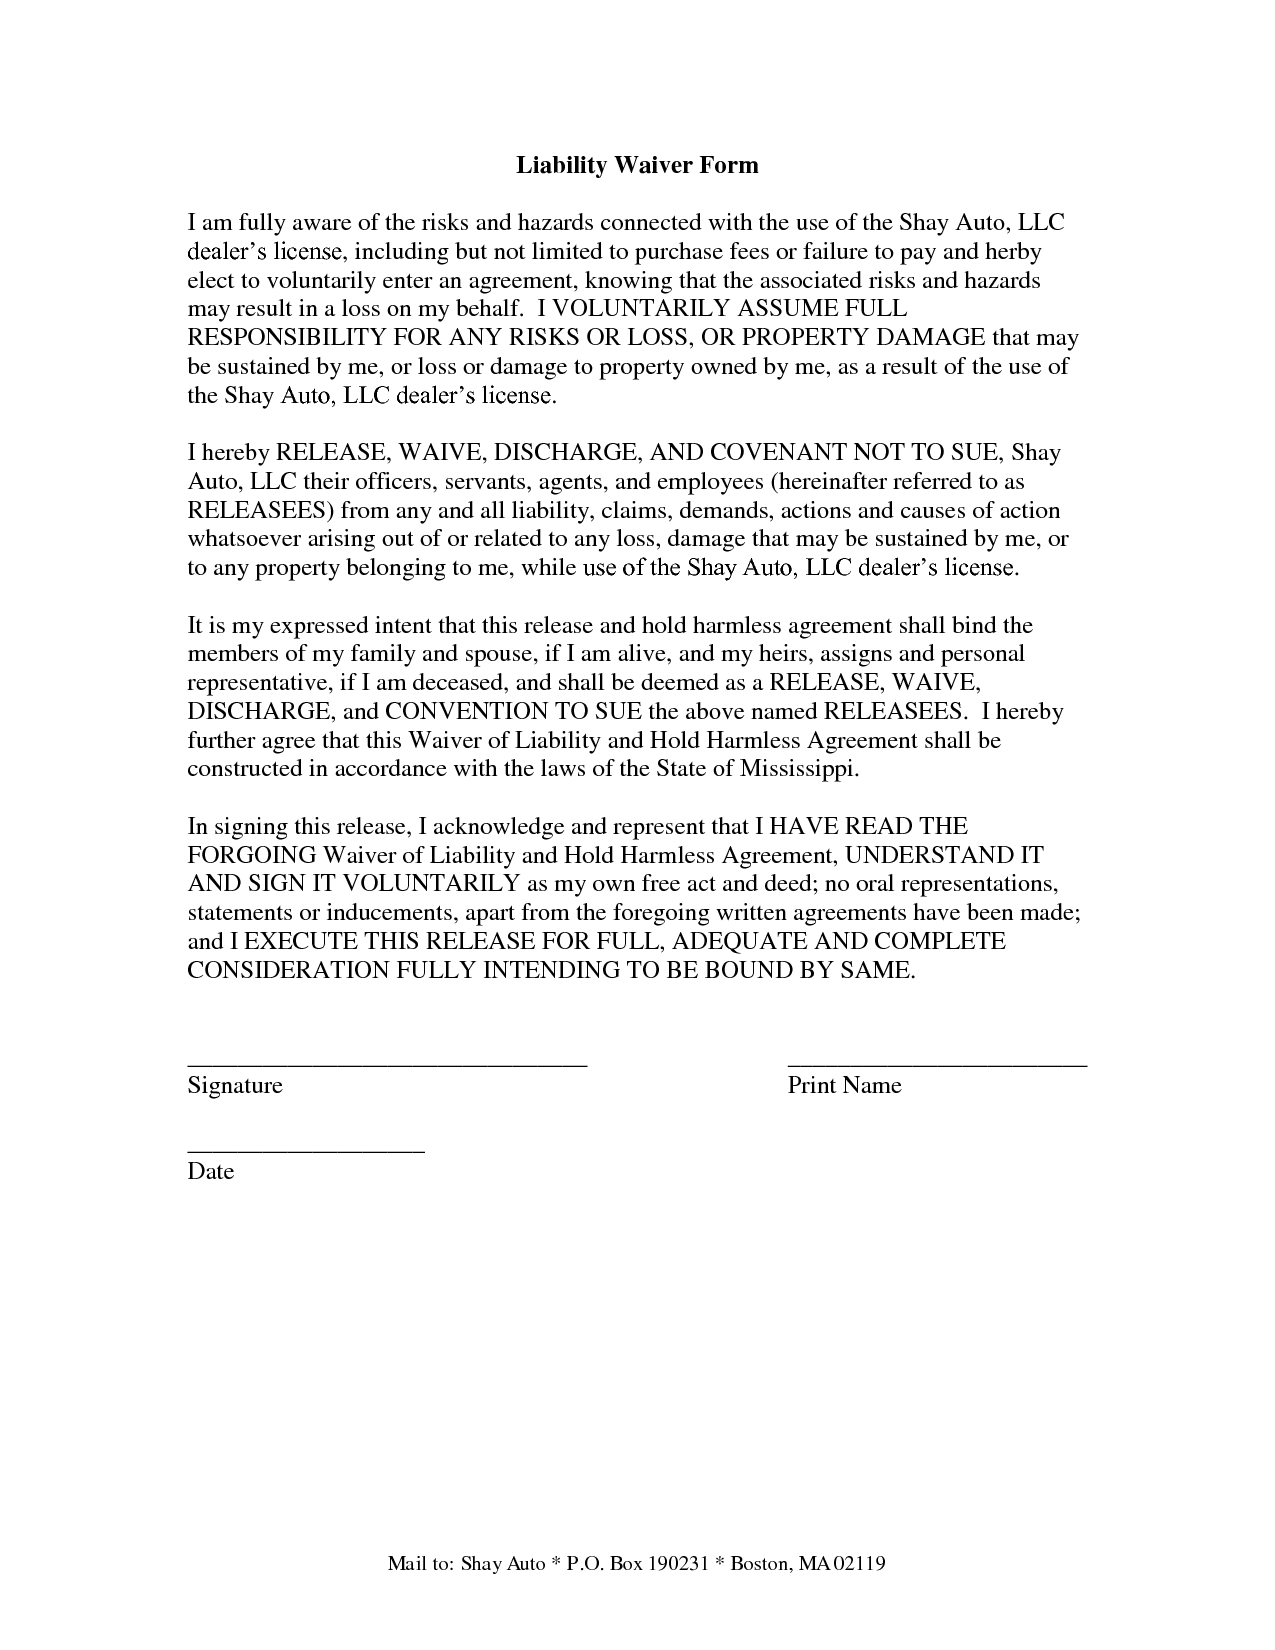 Medical Insurance Insurance Waiver Form Template